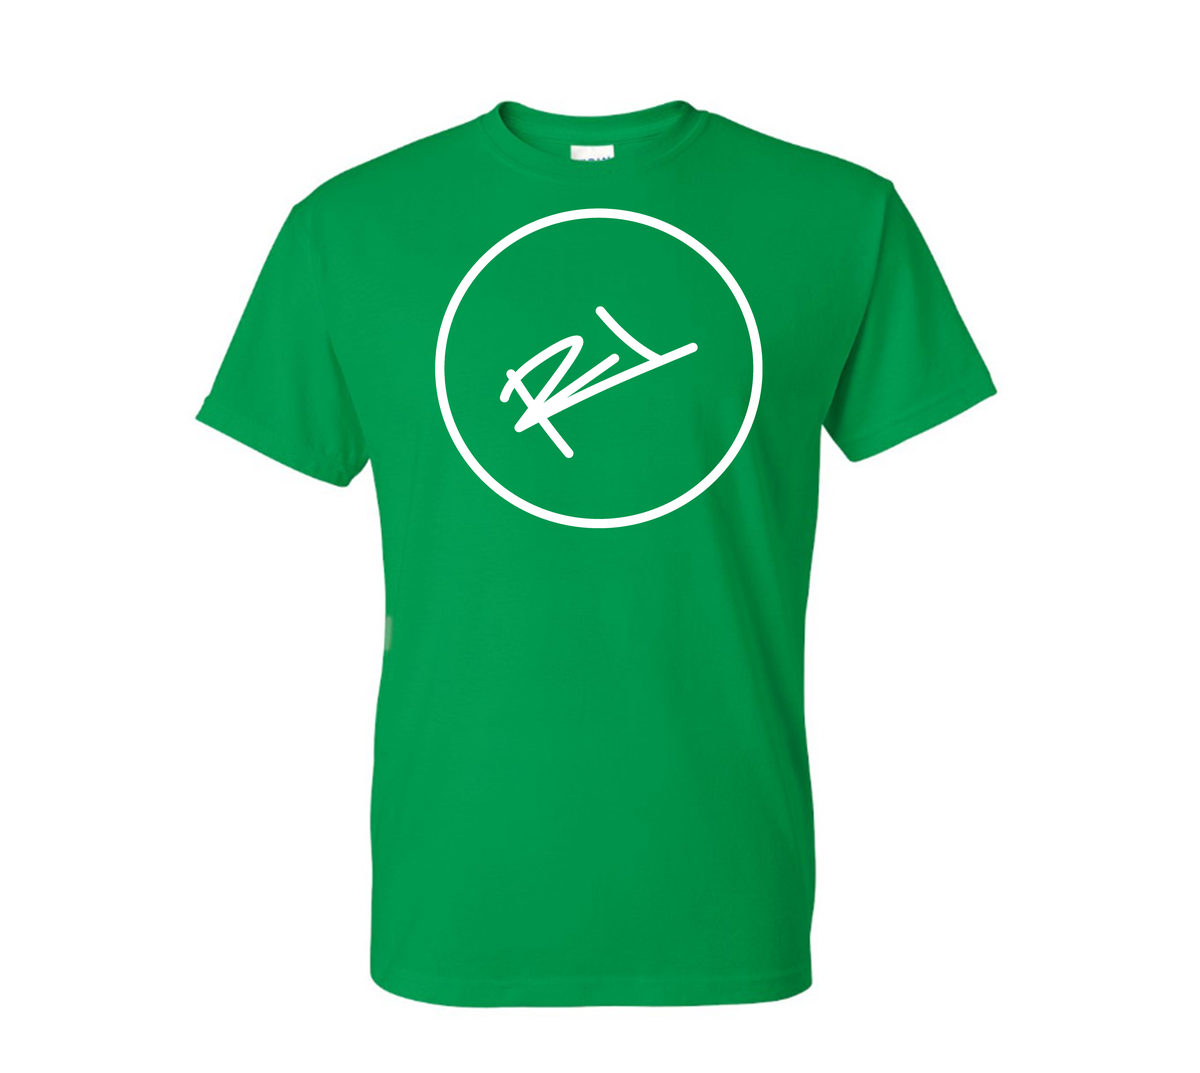 Image of THE ReL BRAND LOGO TEE IN GREEN